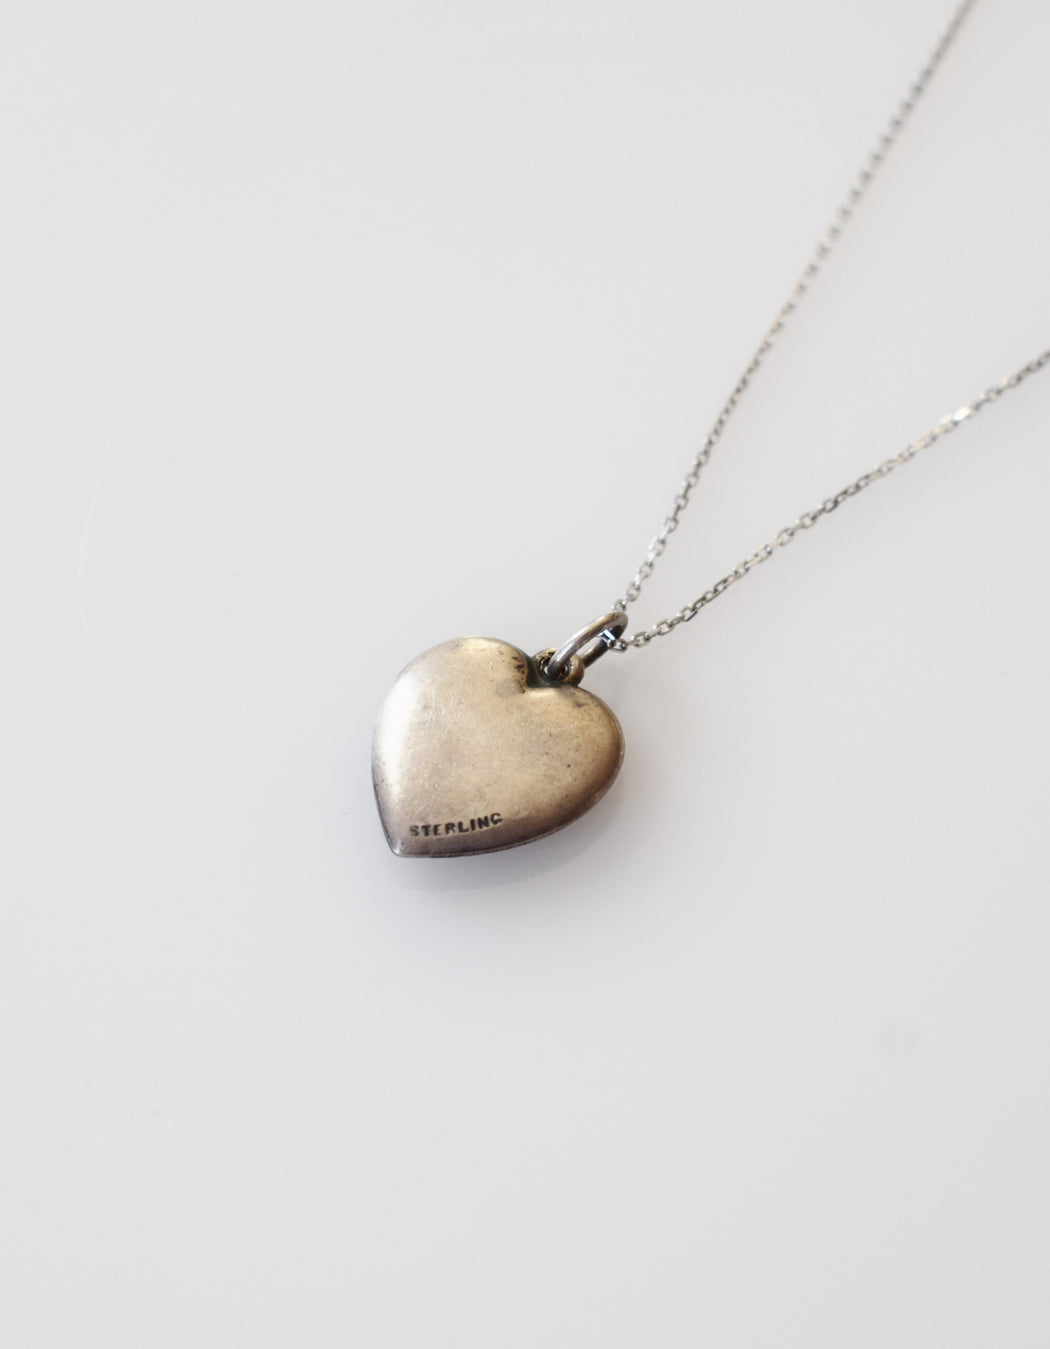 Vintage Silver Bluebird Heart Charm Necklace